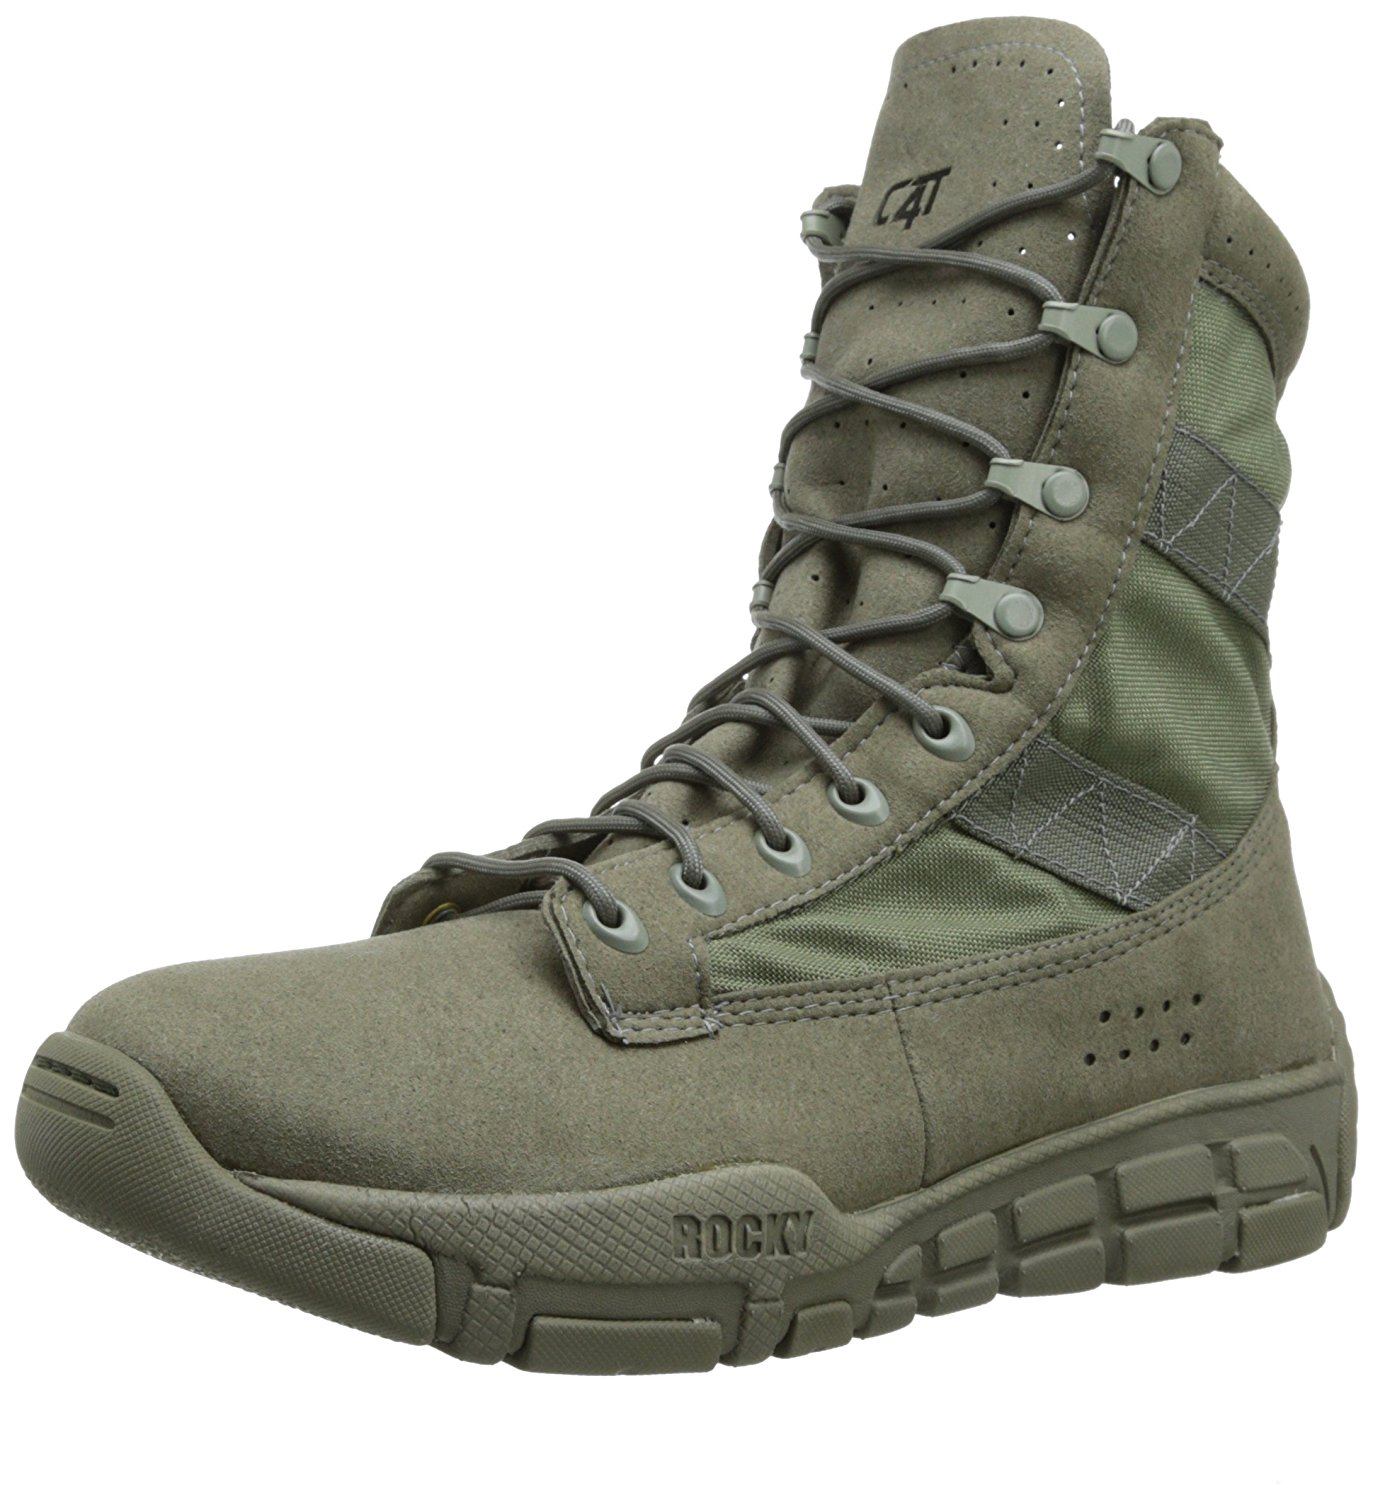 d413ec87565c5 Cheap Rocky Military, find Rocky Military deals on line at Alibaba.com